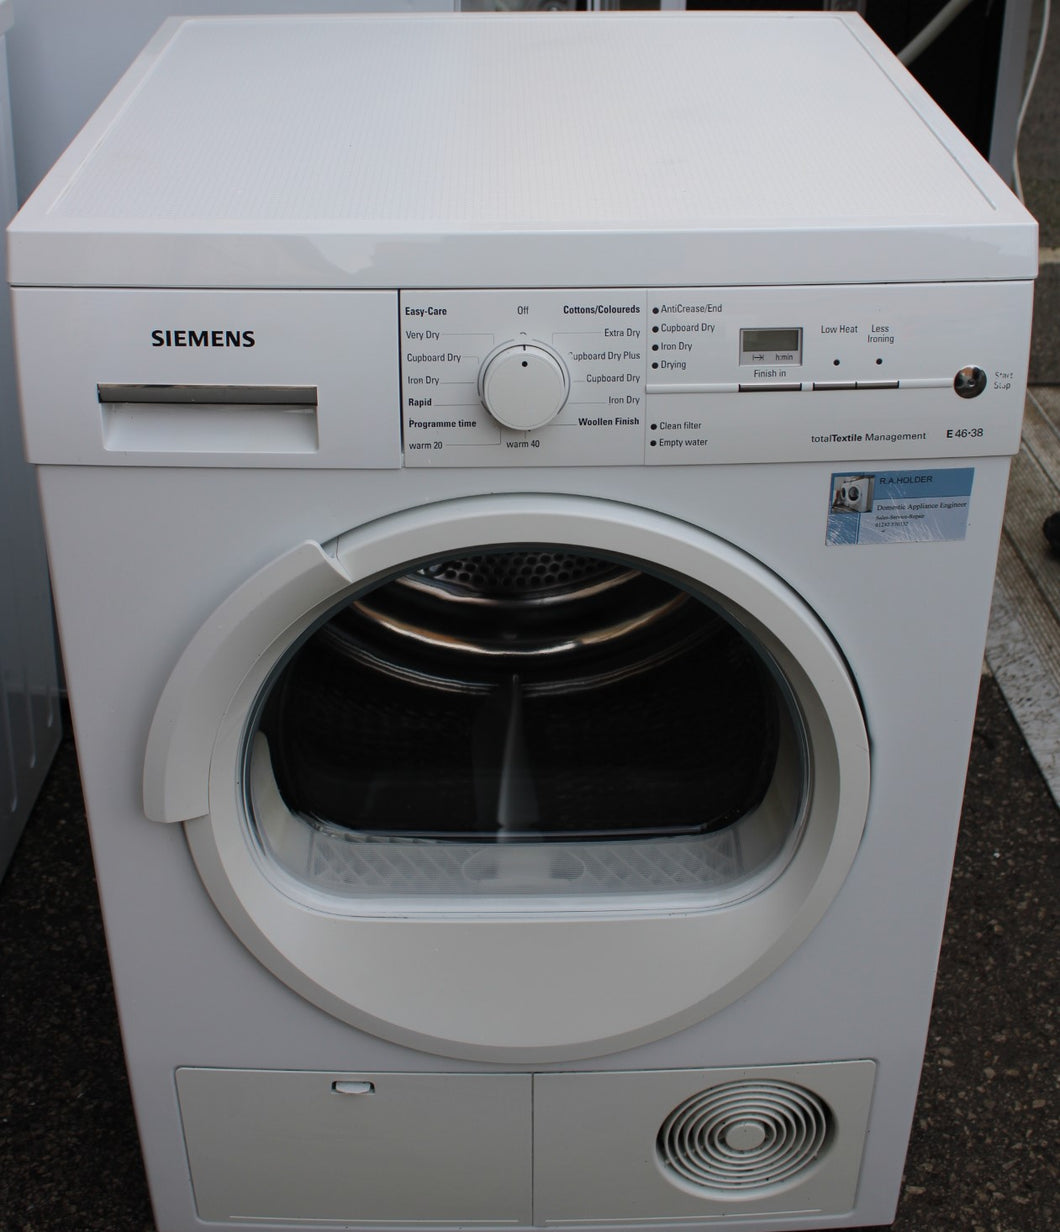 Siemens WT46E387GB Freestanding Condensor Dryer C rated 7 kg White